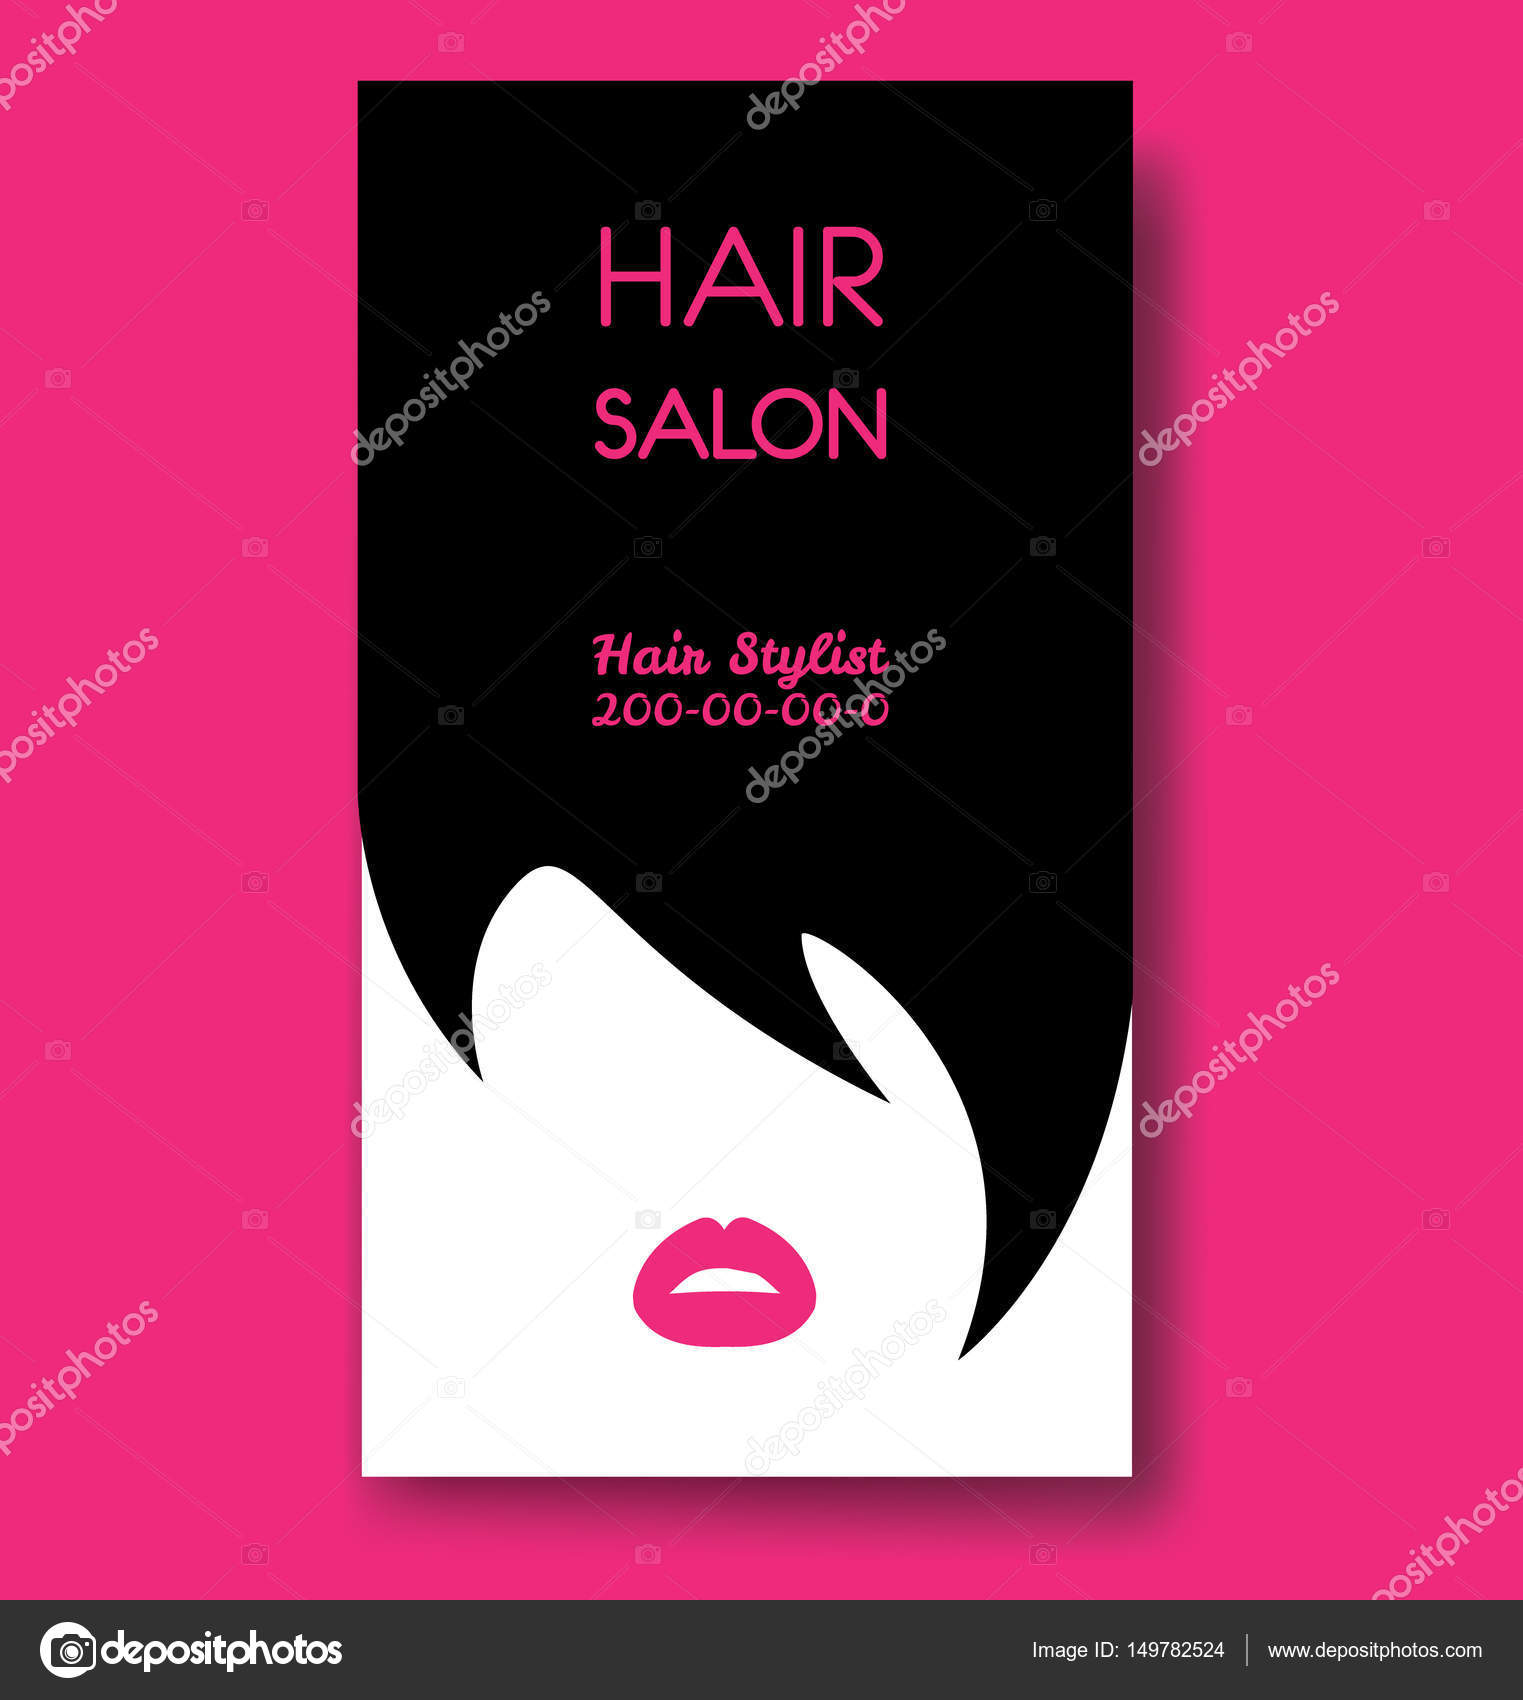 Hair salon business card templates with black hair and beautiful ...